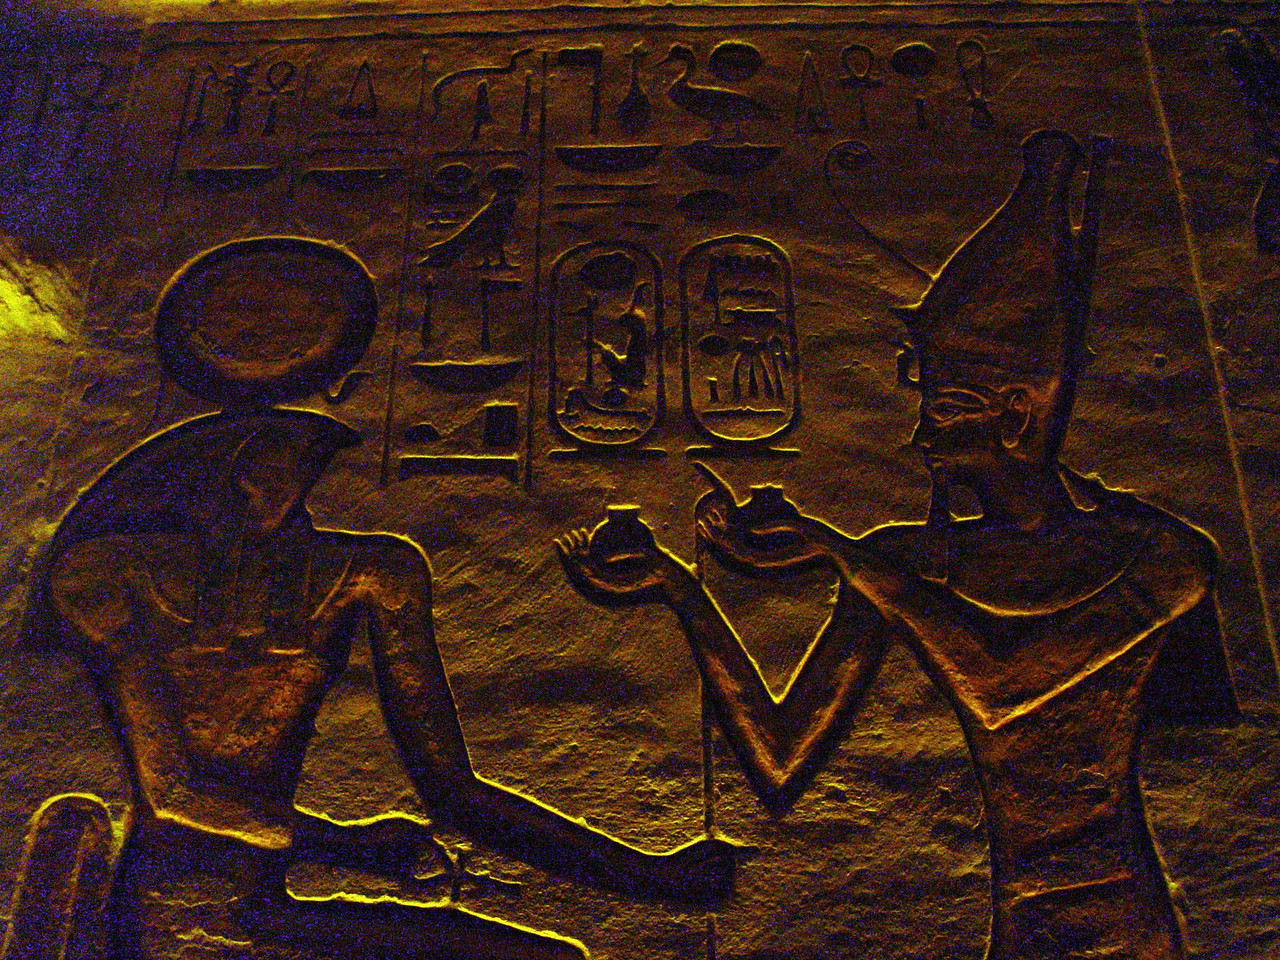 "f) This is Ramesses making an offering to Re-Horakhty<br /> Here is my best translation of the hieroglyphs.<br /> On the right side reading from left to right<br /> transliteration: Ntr nfr nb t3.wy wsr-m3't-r' stp-n-r' s3 r' nb kha? r'-ms-sw mry-imn di 'nh mi r'<br /> translation: the perfect god, lord of the two lands, ""powerful is the justice of Re, chosen of Re"" (this is the pharoahs throne name in the first cartouche). The son of Re, lord of apparitions?Ramesses, beloved of Amun (this is the pharoahs birth name). Bestowed life like Re.<br /> On the left side reading from right to left<br /> transliteration: Dd mdw r' hr'hty a' ntr nb pt. di=n 'nh Dd w's.<br /> translation: Words spoken for Re-Horahkty, great god of the sky, given life, stability, and power. The egyptian hieroglyphs class I took at UCLA truly enhanced my visit to Egypt. I spent much more time viewing the temple inscriptions than any other tourist."